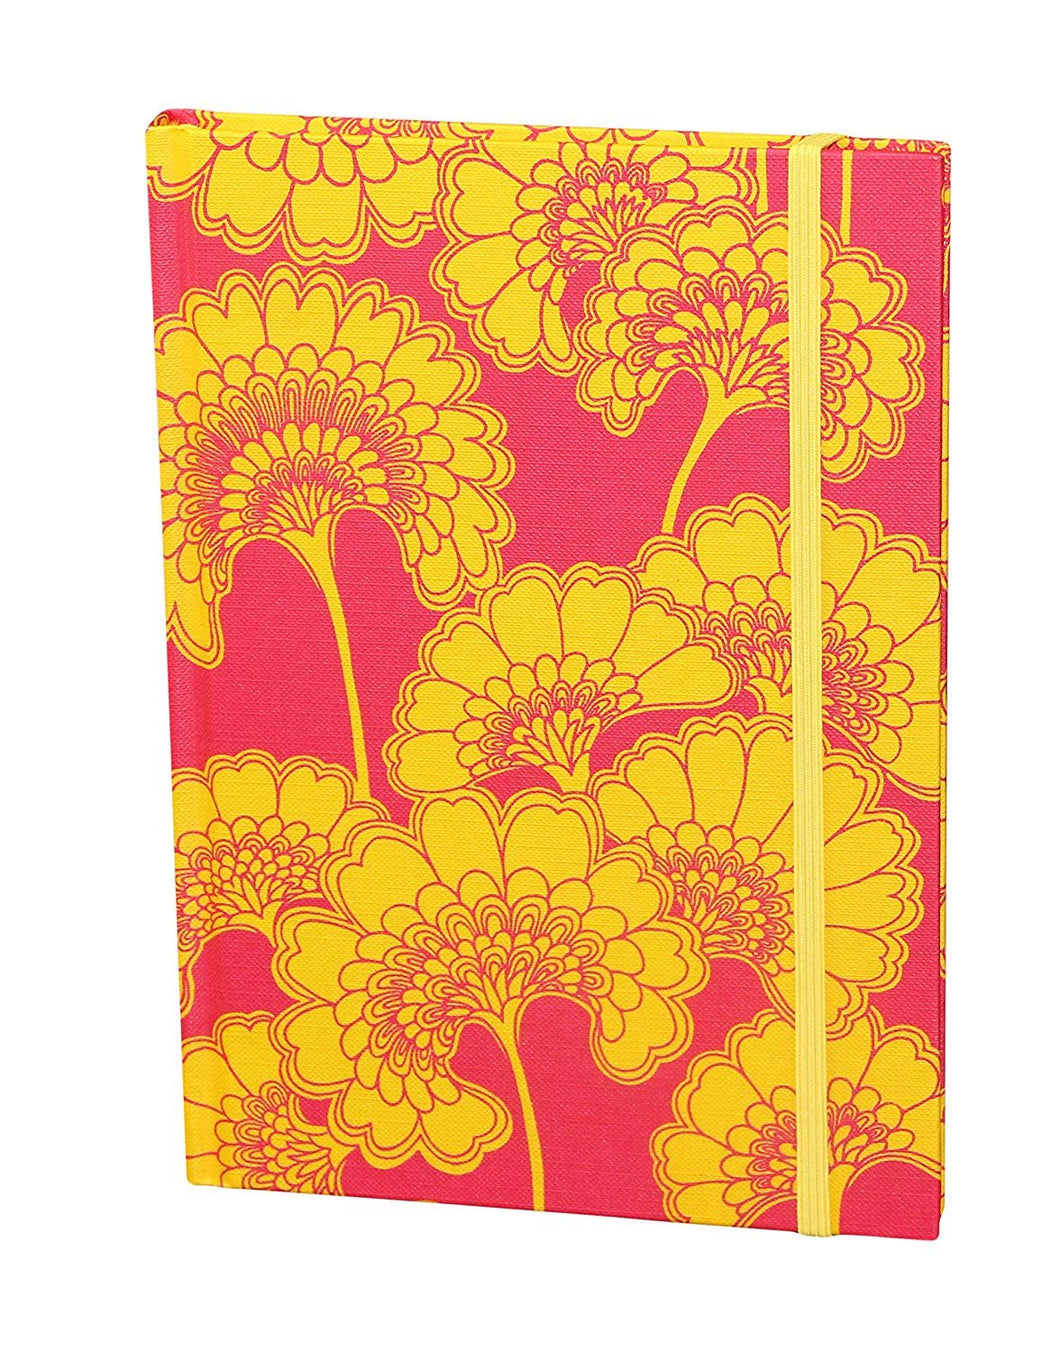 Florence Broadhurst Japanese Floral Journal - 160 Ruled Pages. Daily Notebook Journal Size: 6.25